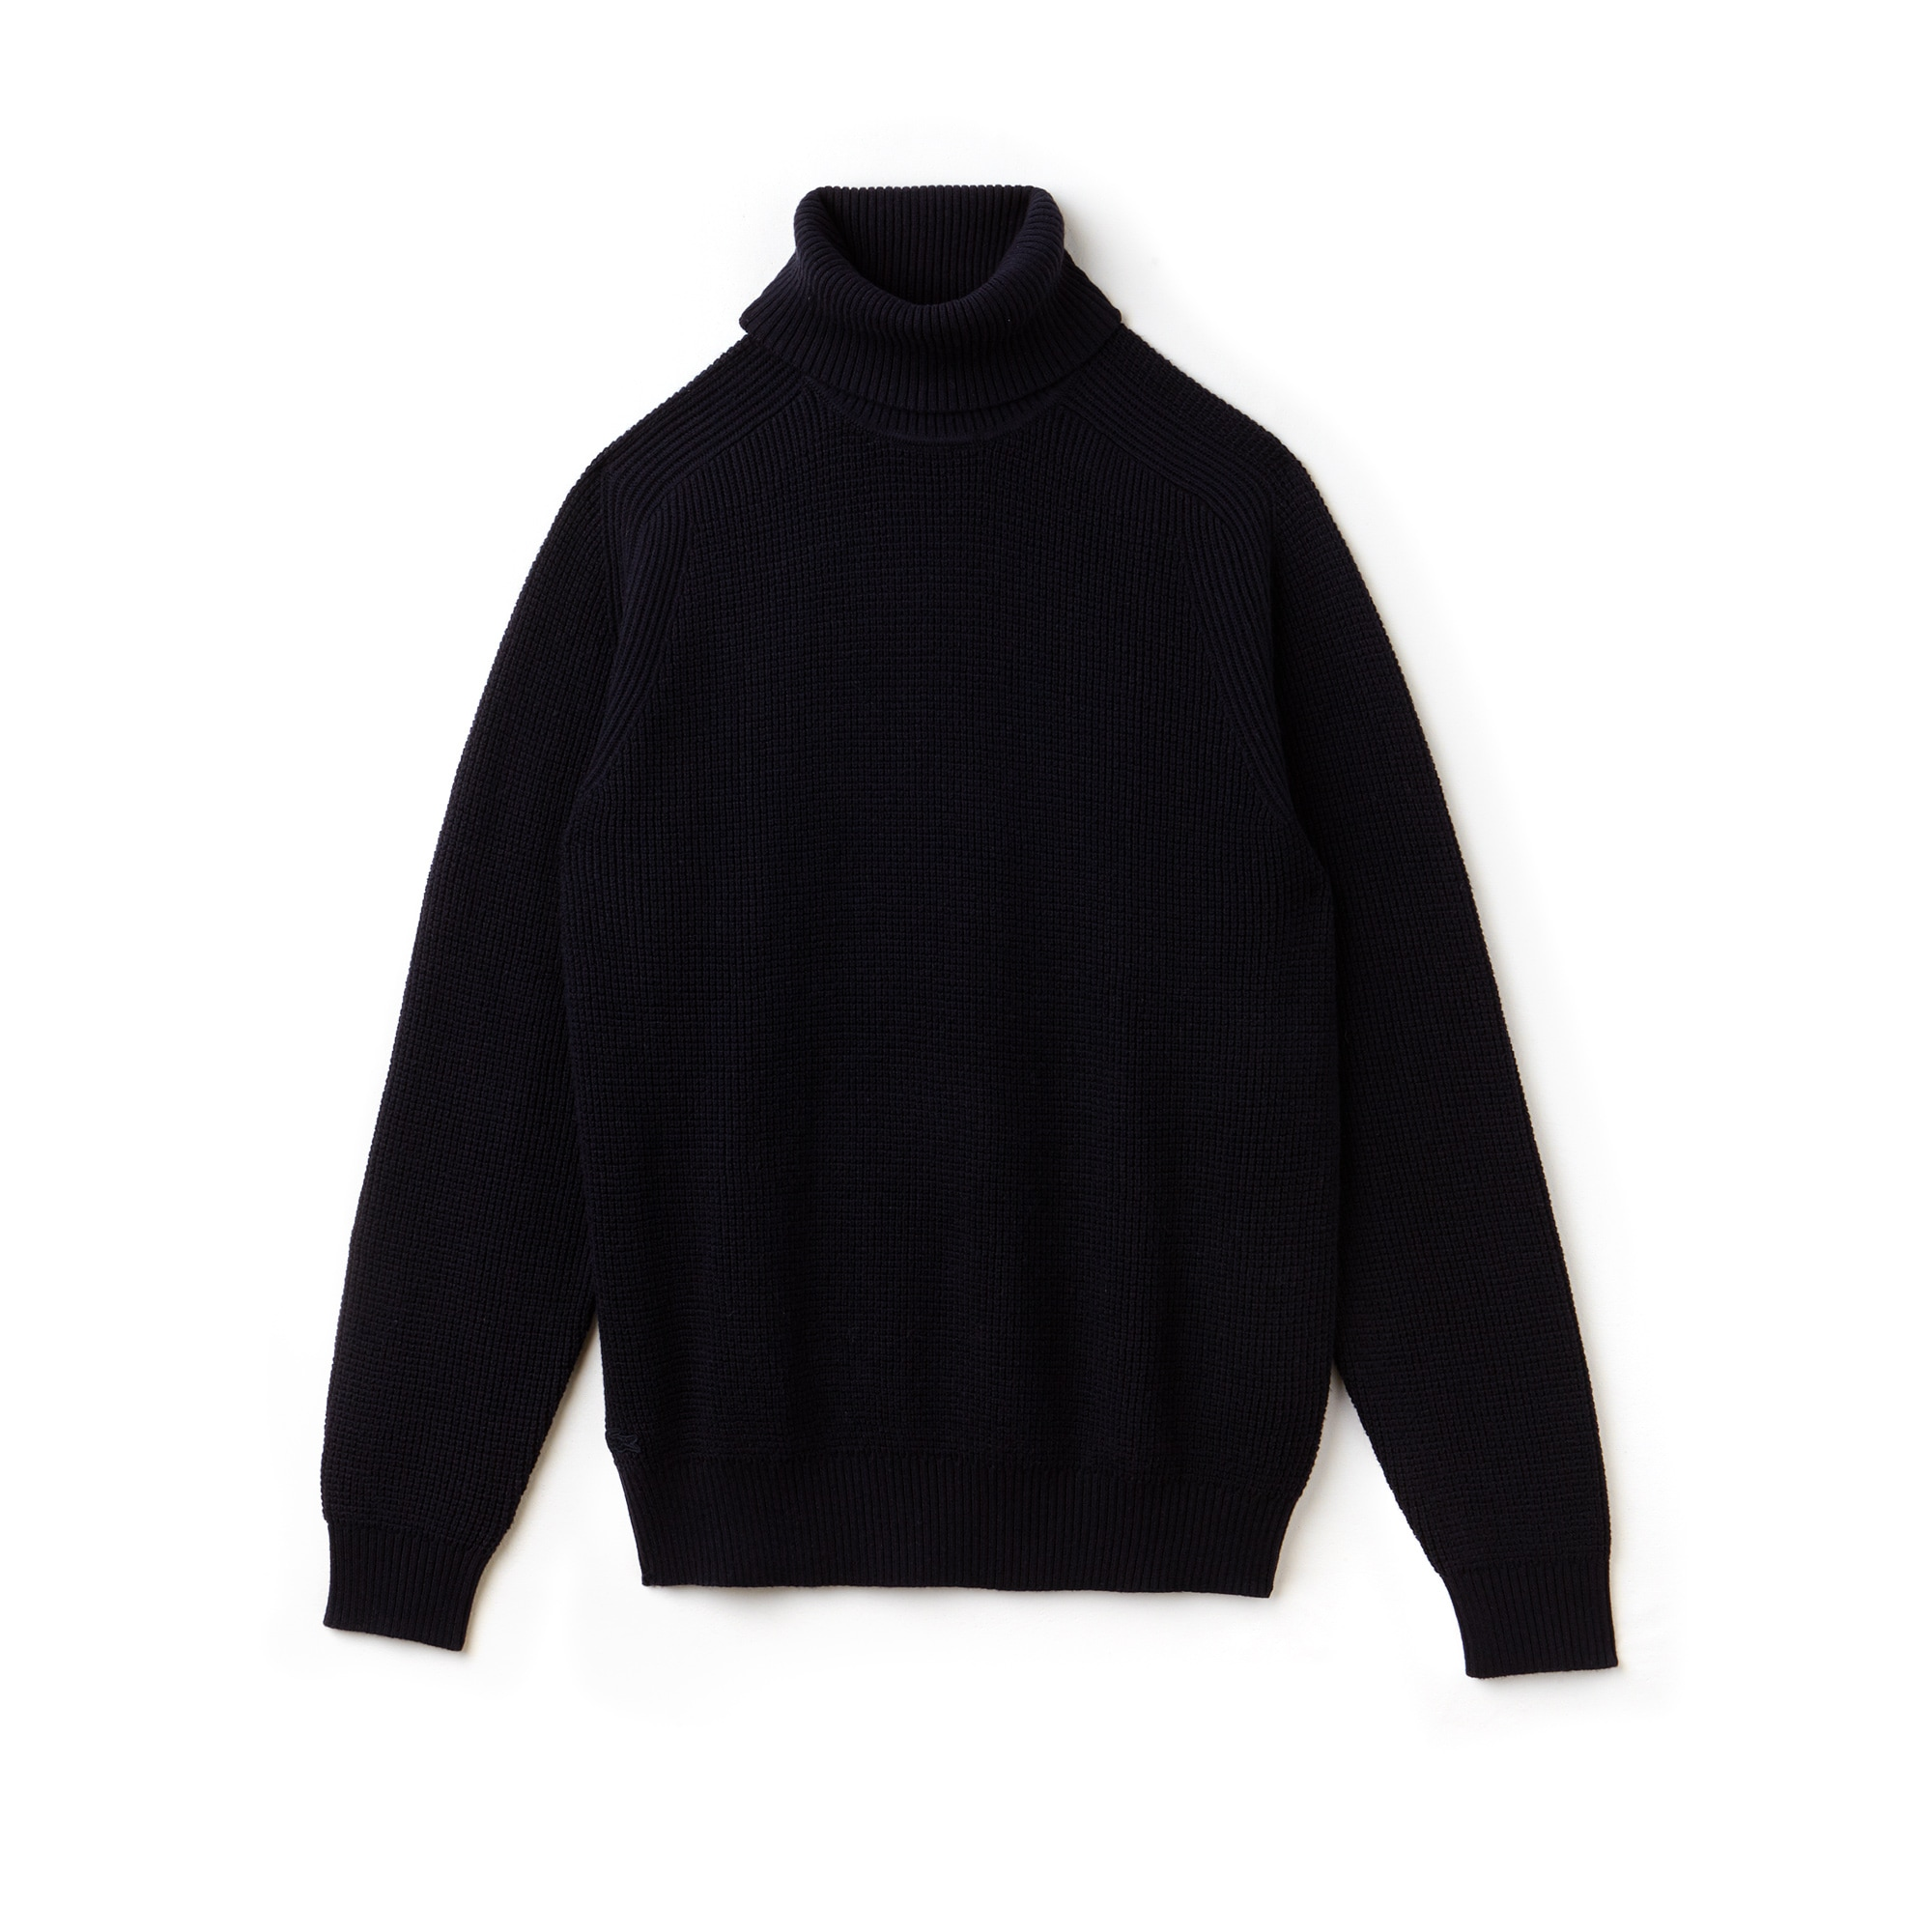 Men's Stand-Up Neck Honeycomb Wool And Cotton Sweater